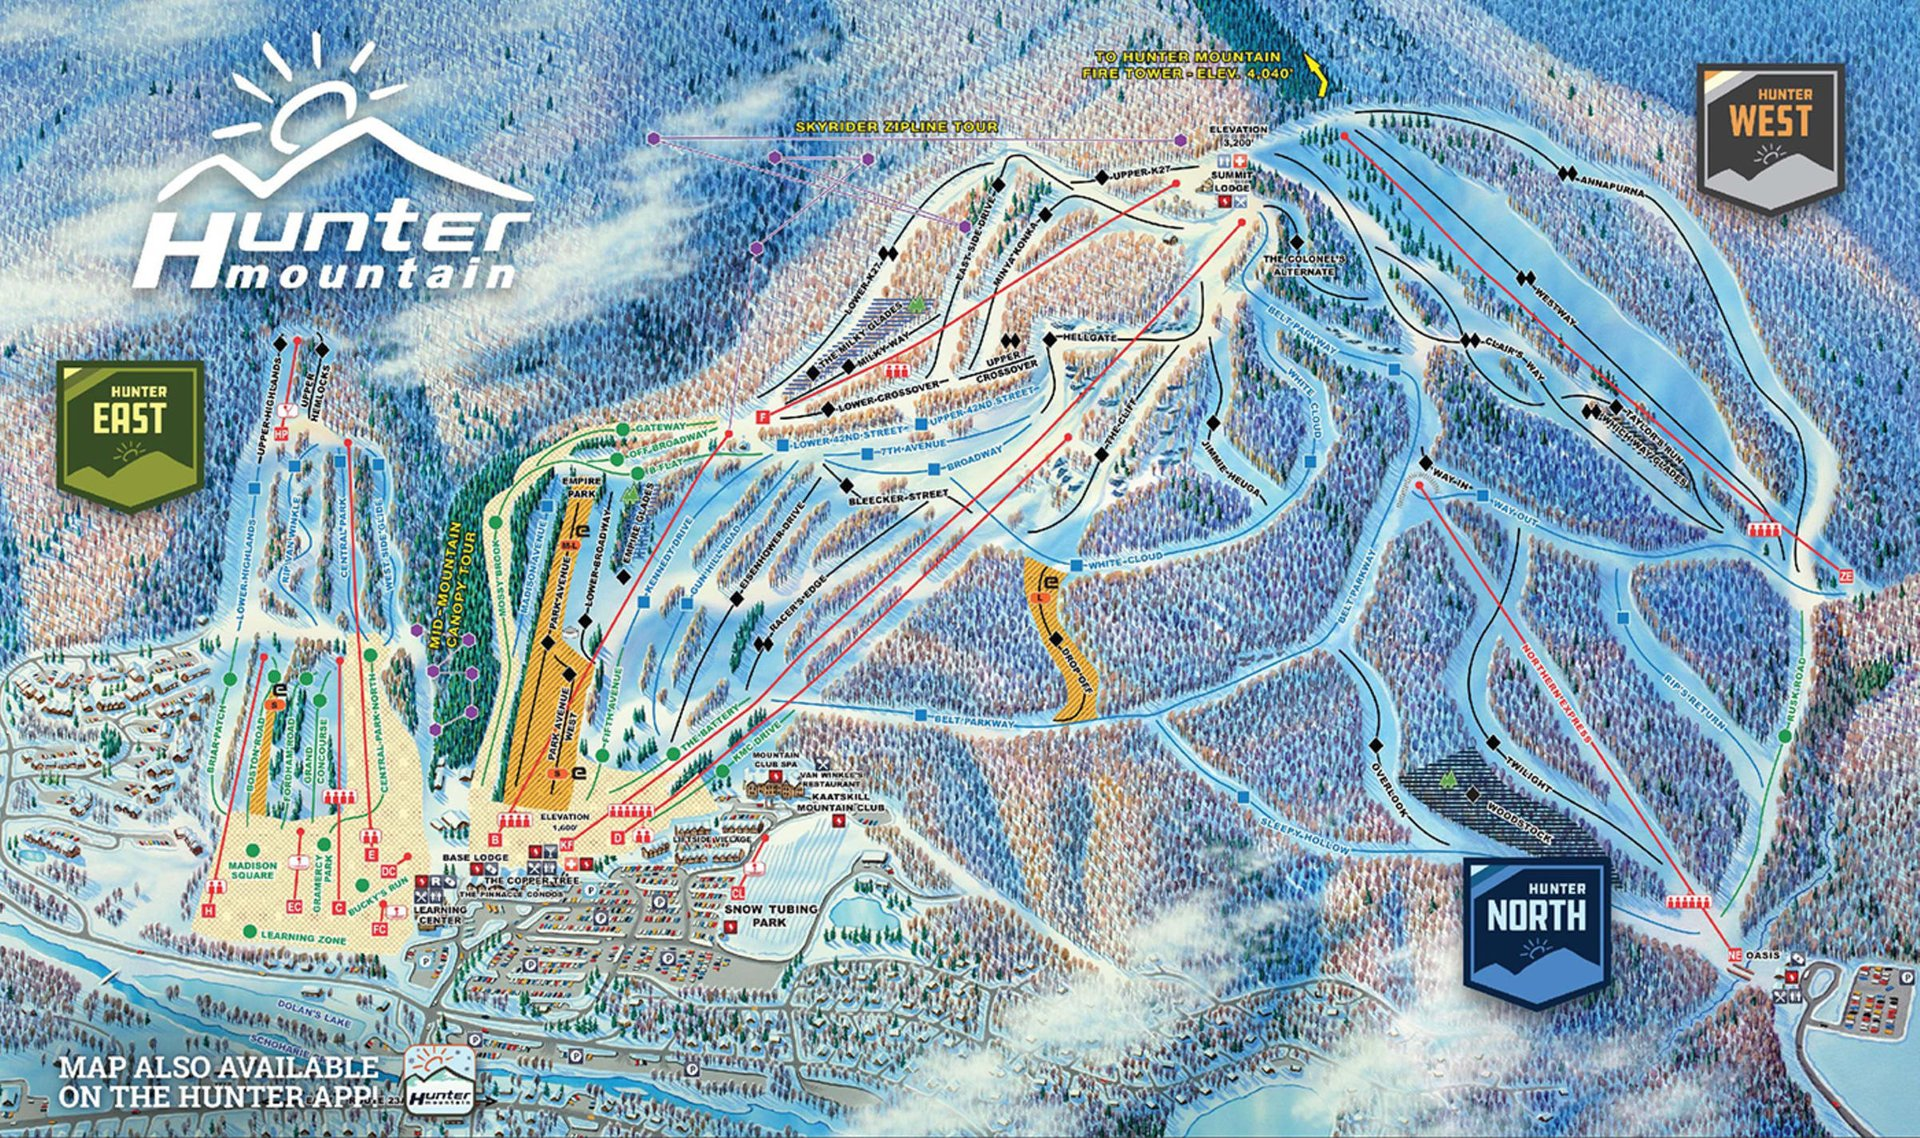 Skiing near NYC: The Catskill Mountains in New York State - Best Season 2020